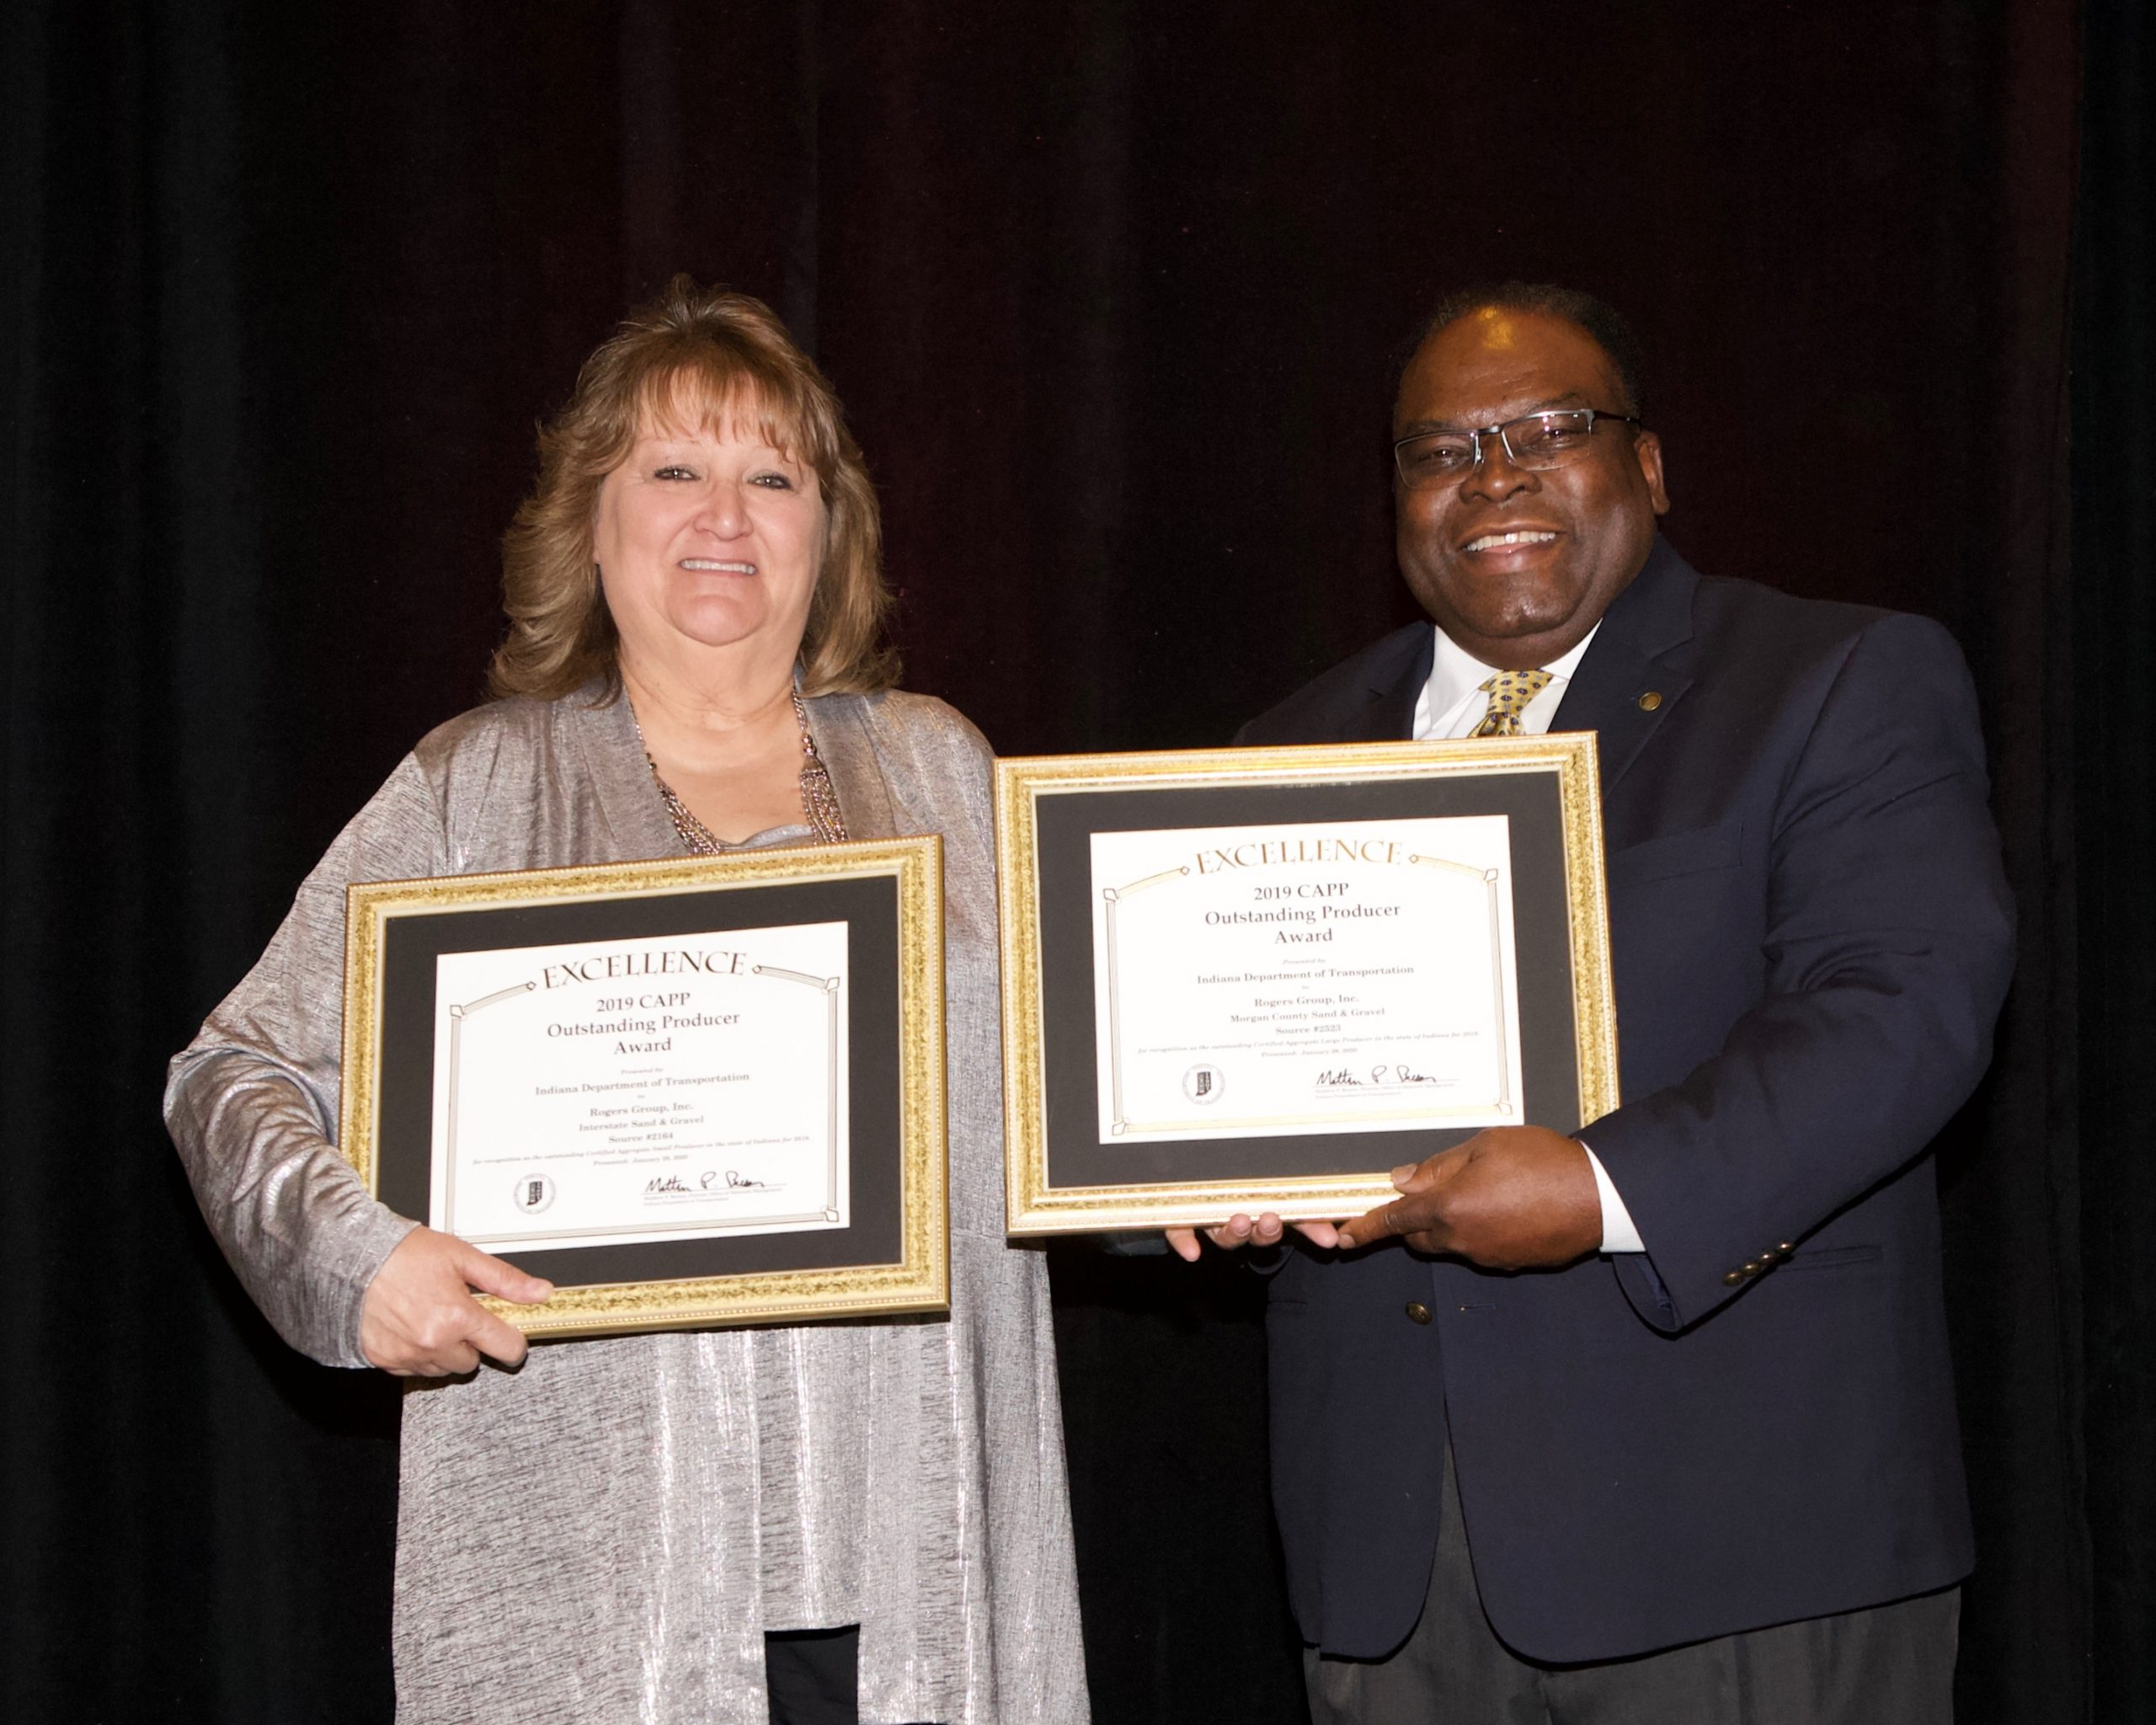 Toni Gunderman accepts the Overall State CAPP District Awards for Rogers Group, Inc. Interstate Sand & Gravel and Rogers Group, Inc. Morgan County Sand & Gravel